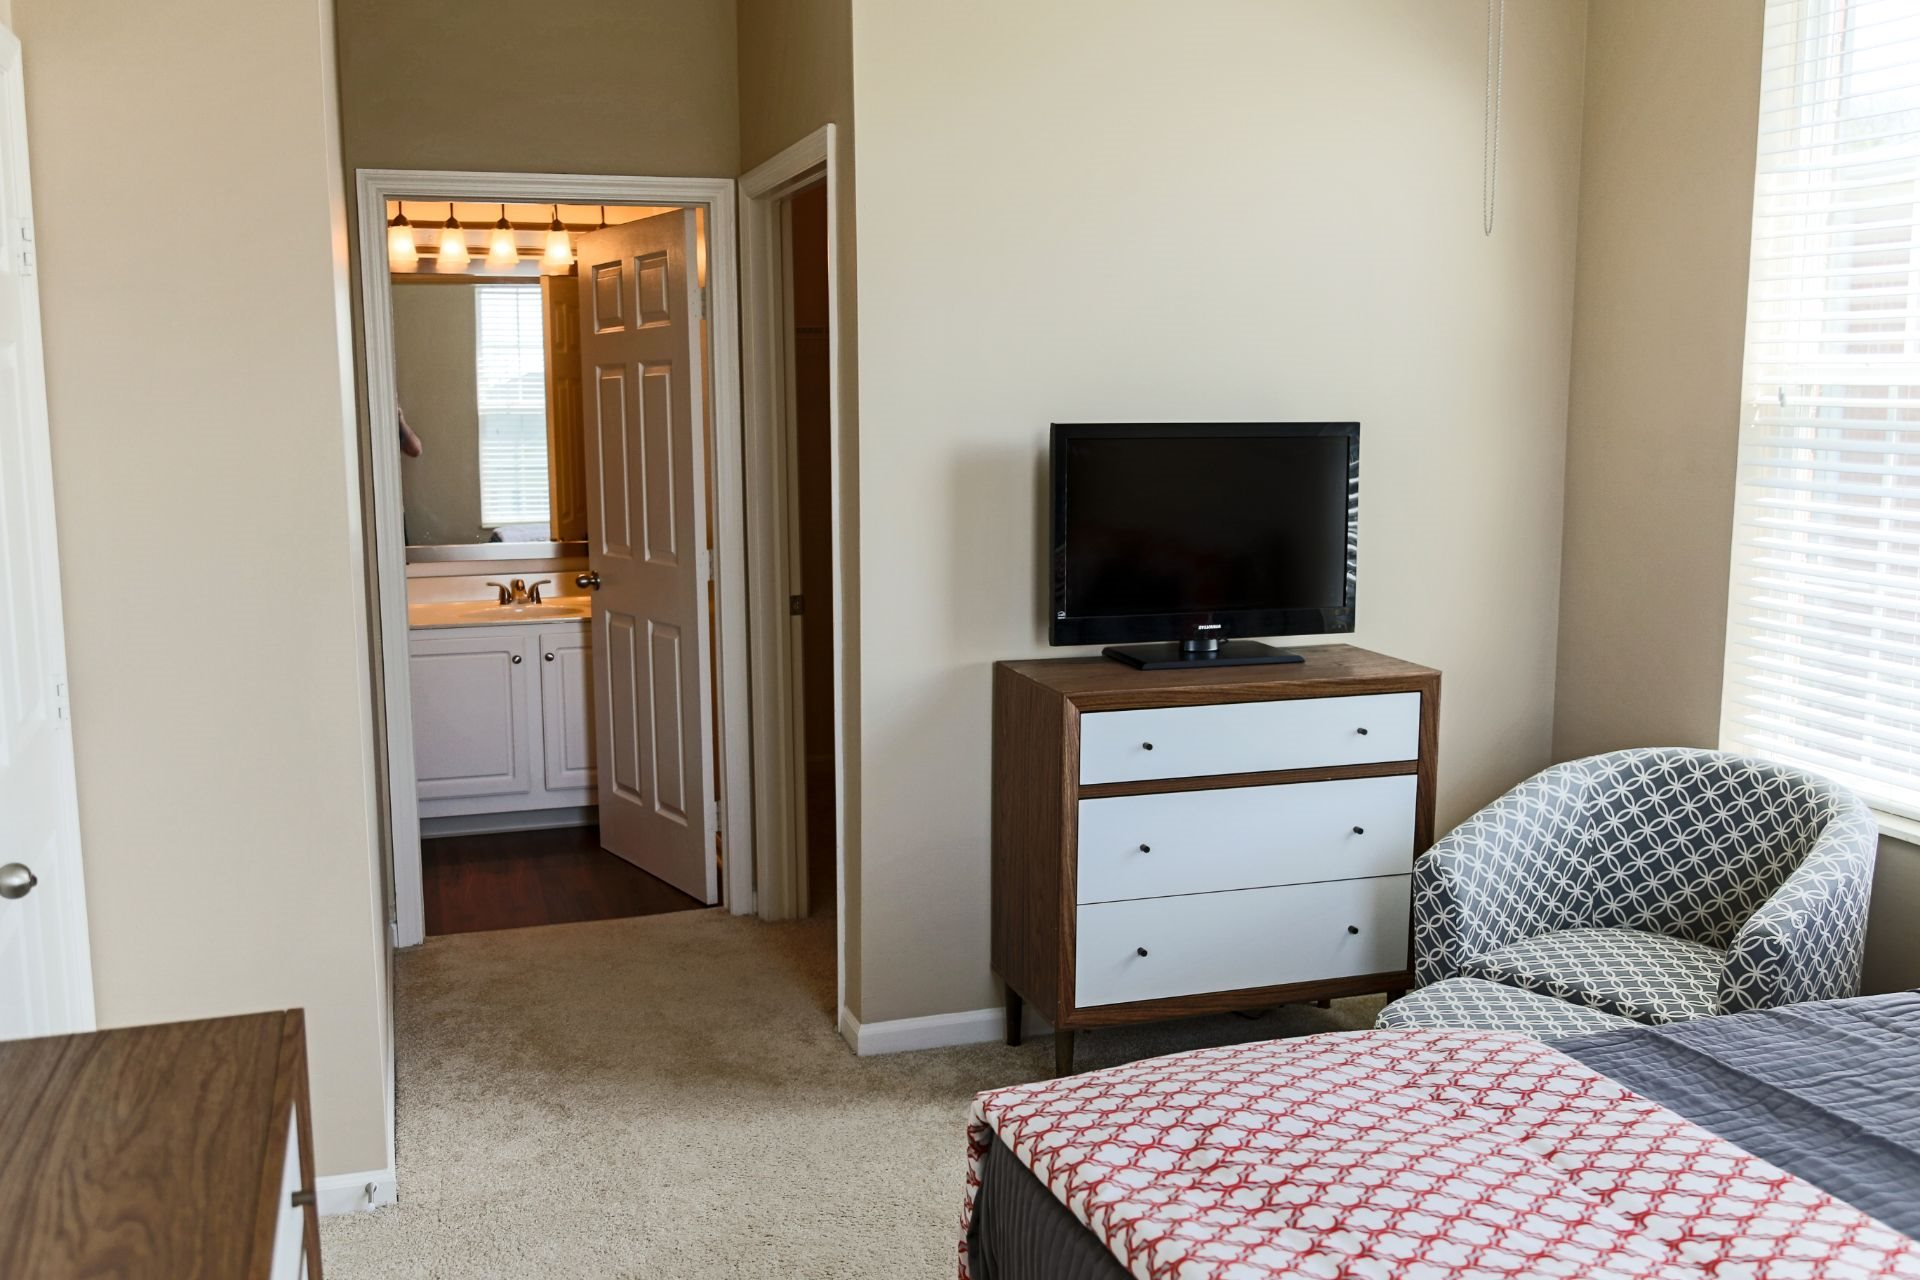 Pet Friendly Apartments and Townhomes in West Chester OH with Large Bedrooms and Bathrooms, The Preserve at Beckett Ridge